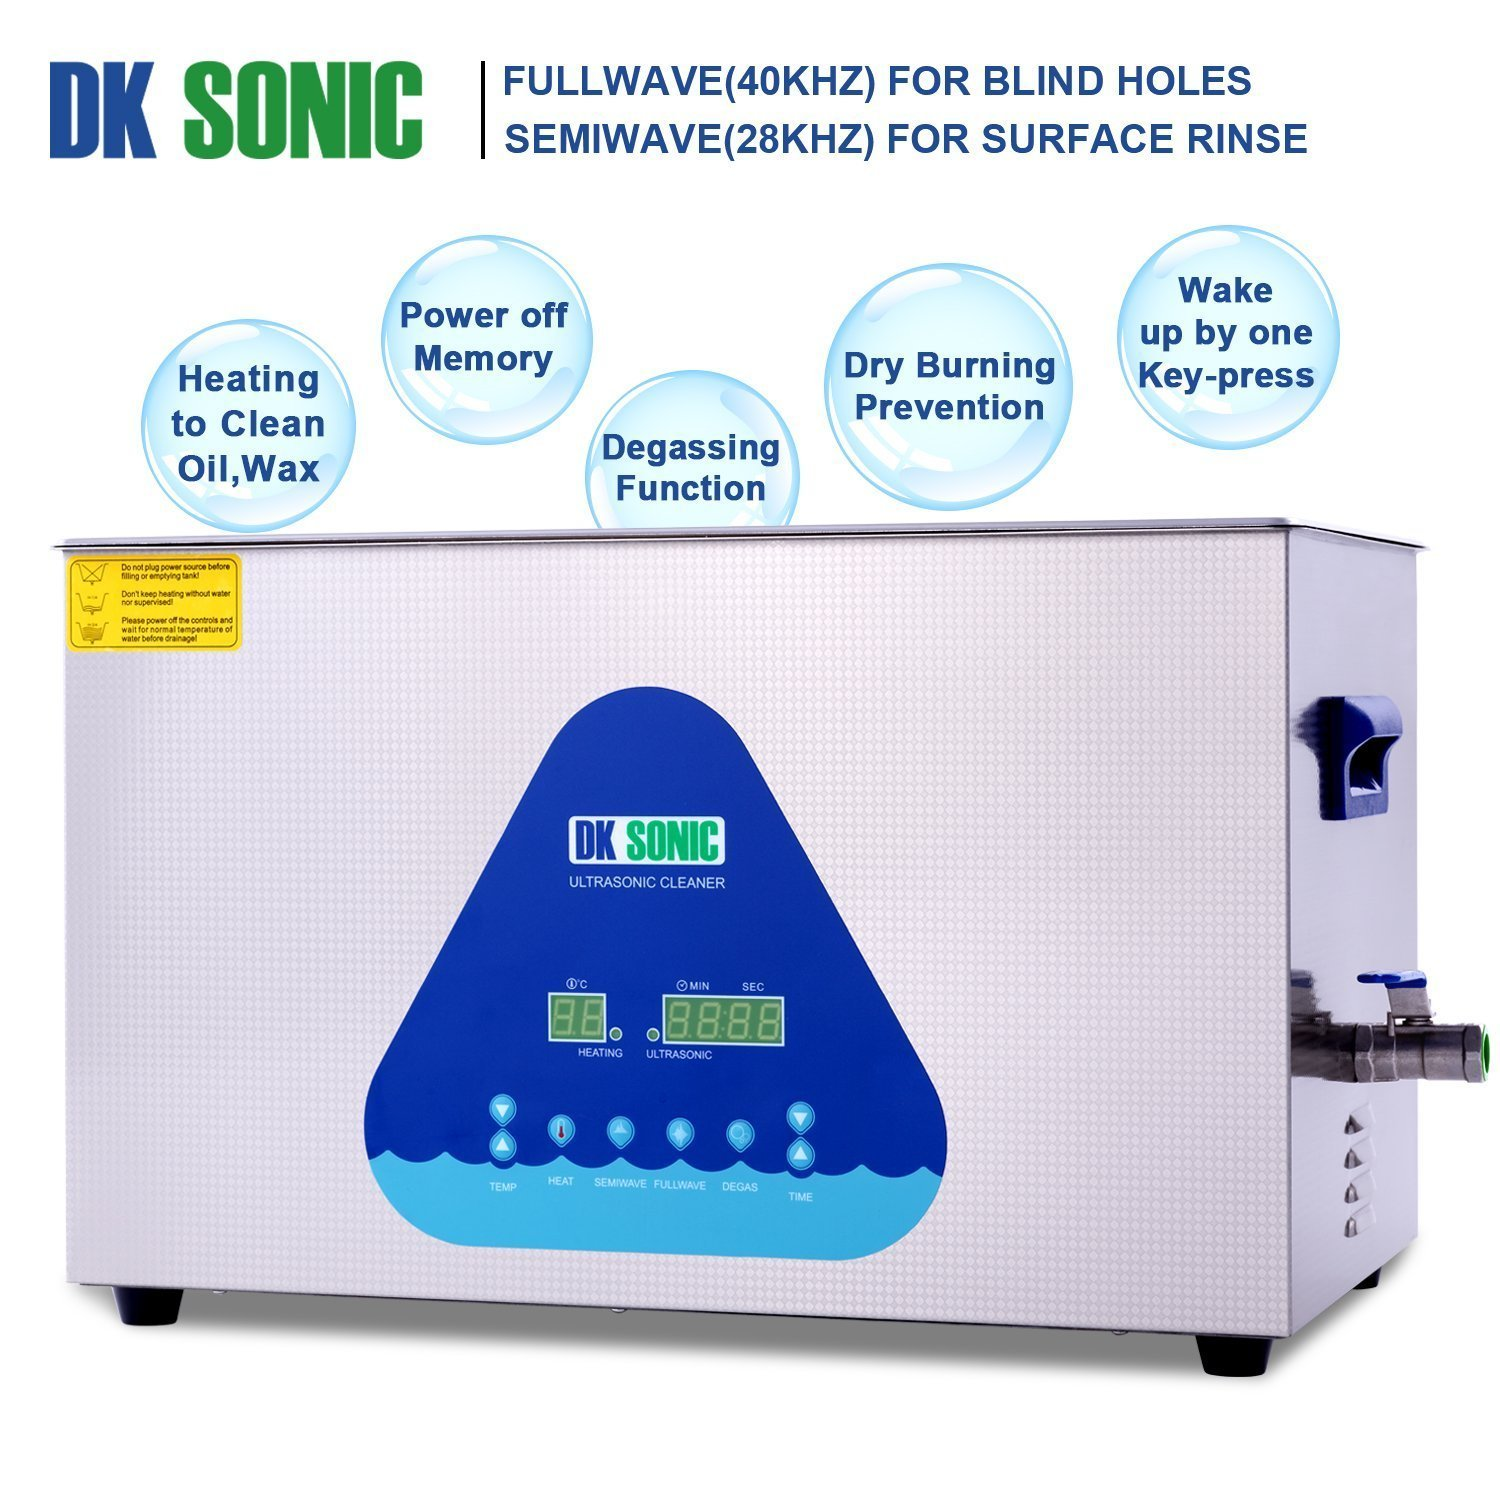 Lab Digital Ultrasonic Carburetor Cleaner Heated - DK SONIC 22L 480W Ultrasonic Gun Cleaner for Parts Jewelry Brass Eyeglass Ring Fuel Injector Glasses Record Diamond Circuit Board 28/40KHz by DK SONIC (Image #3)